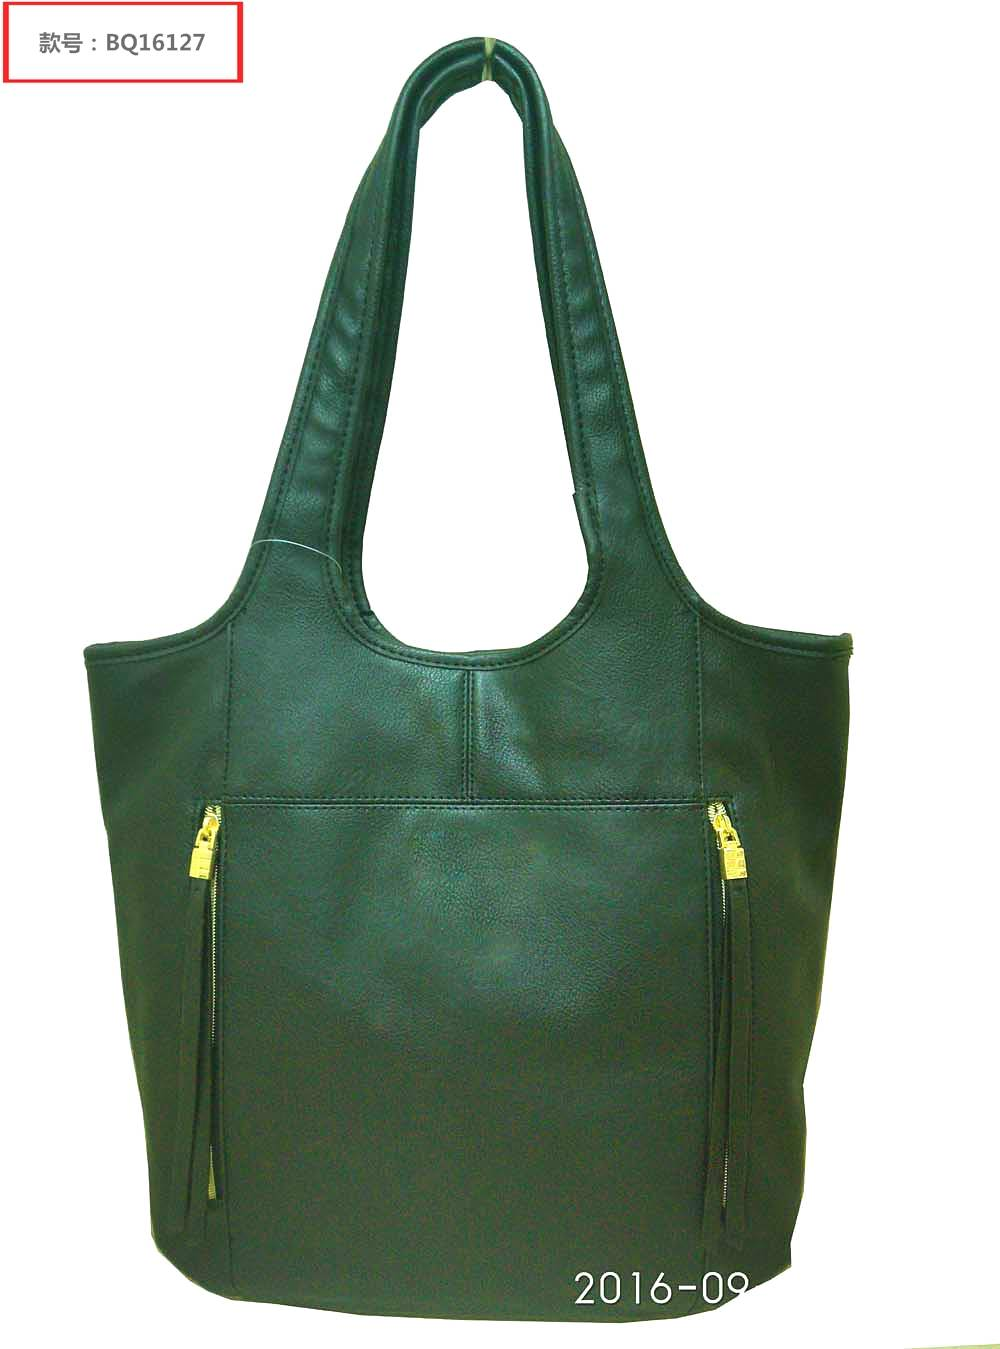 handbags-shopper BQ16127